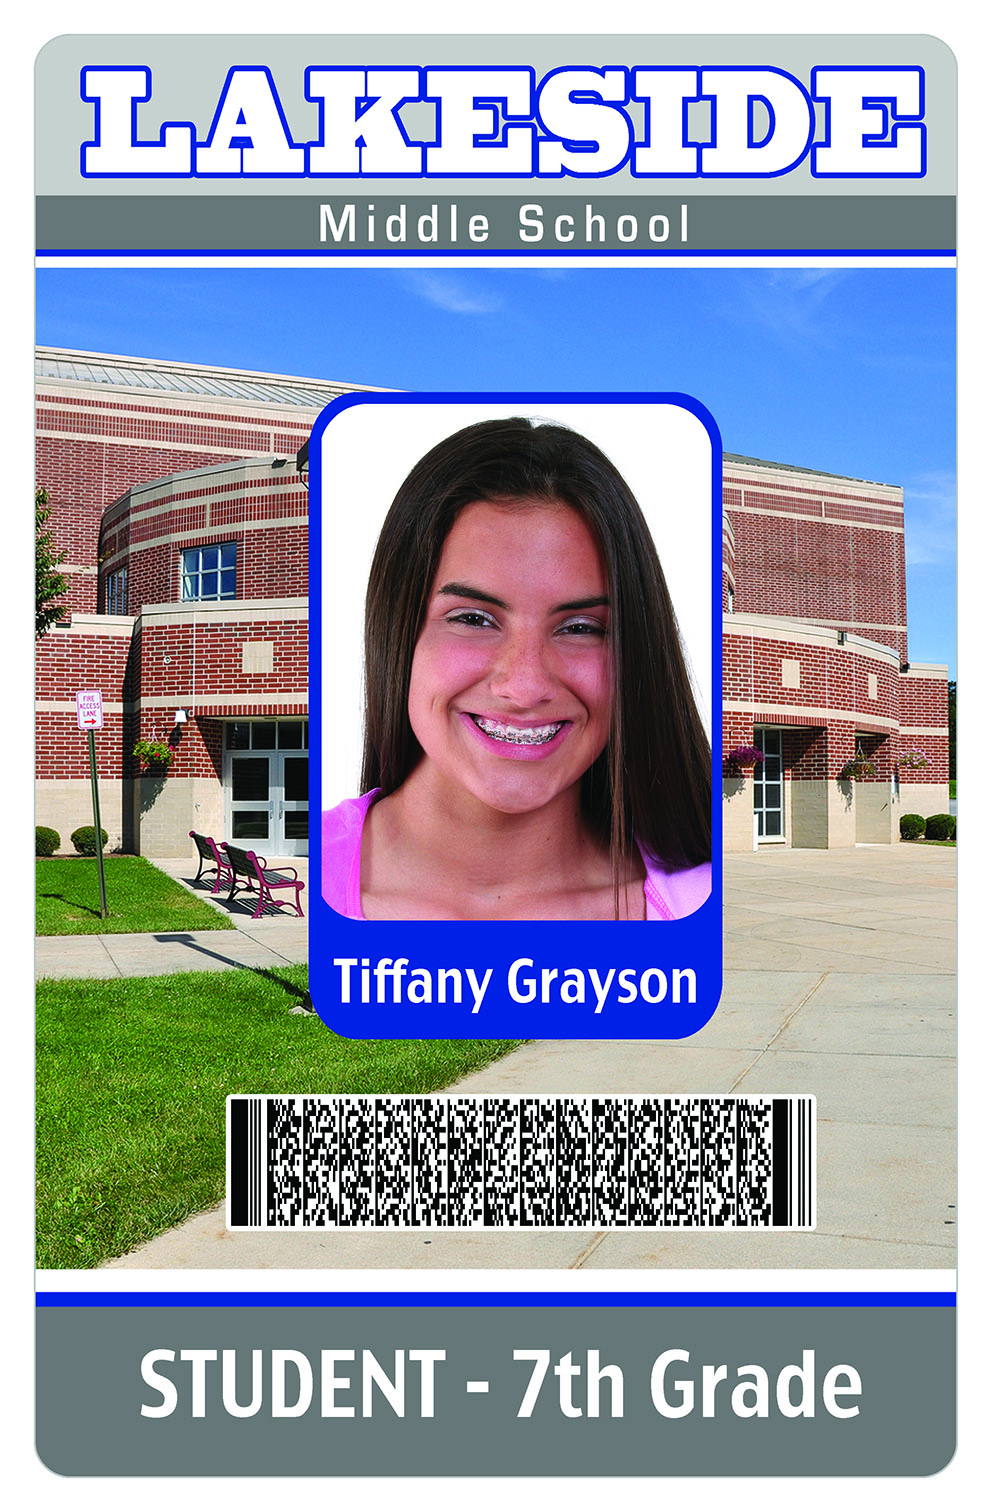 ISG_Card_MiddleSchool